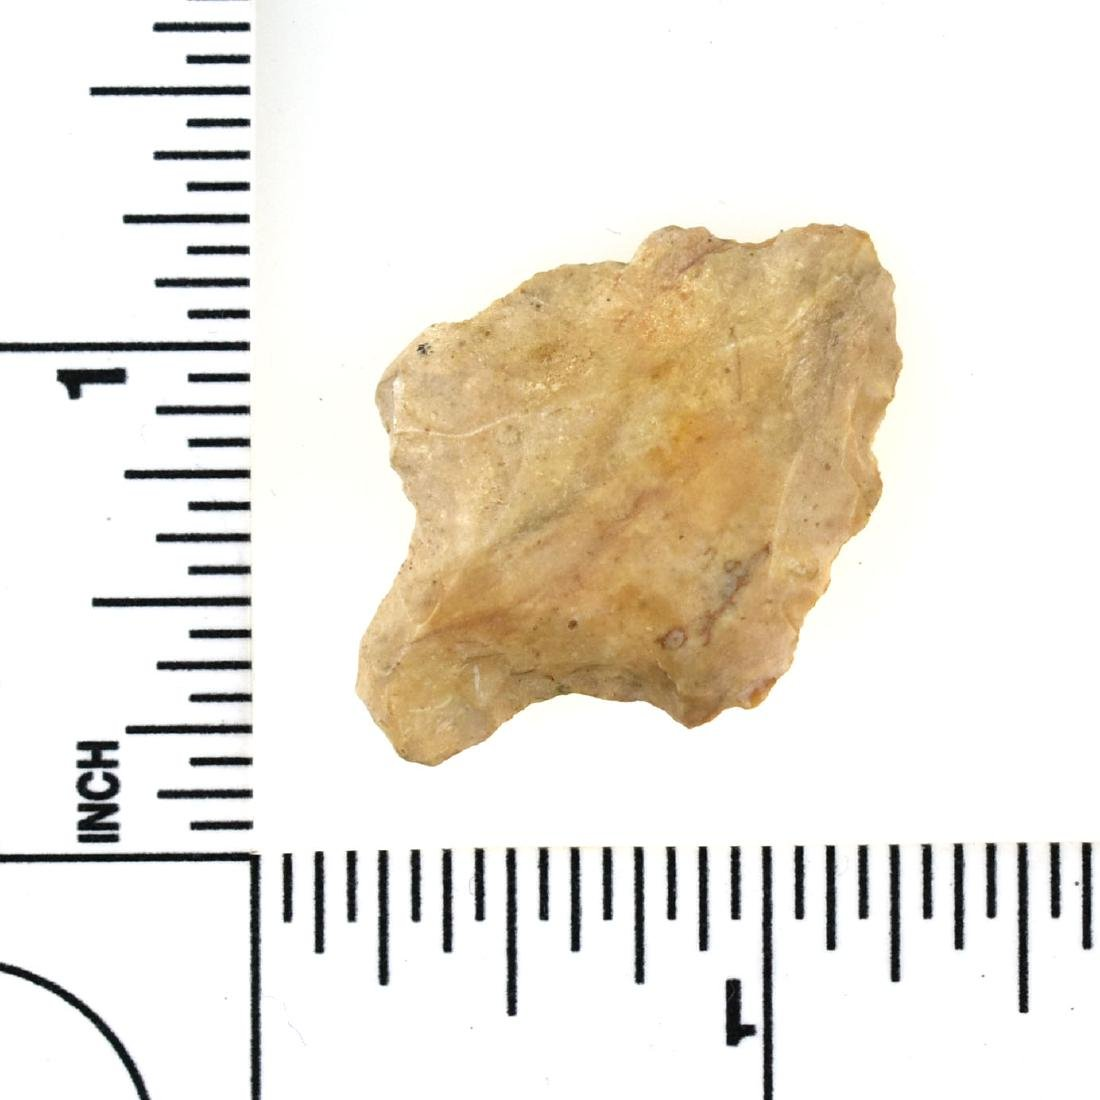 Extremely Old 34mm Mesolithic Arrowhead from Morocco